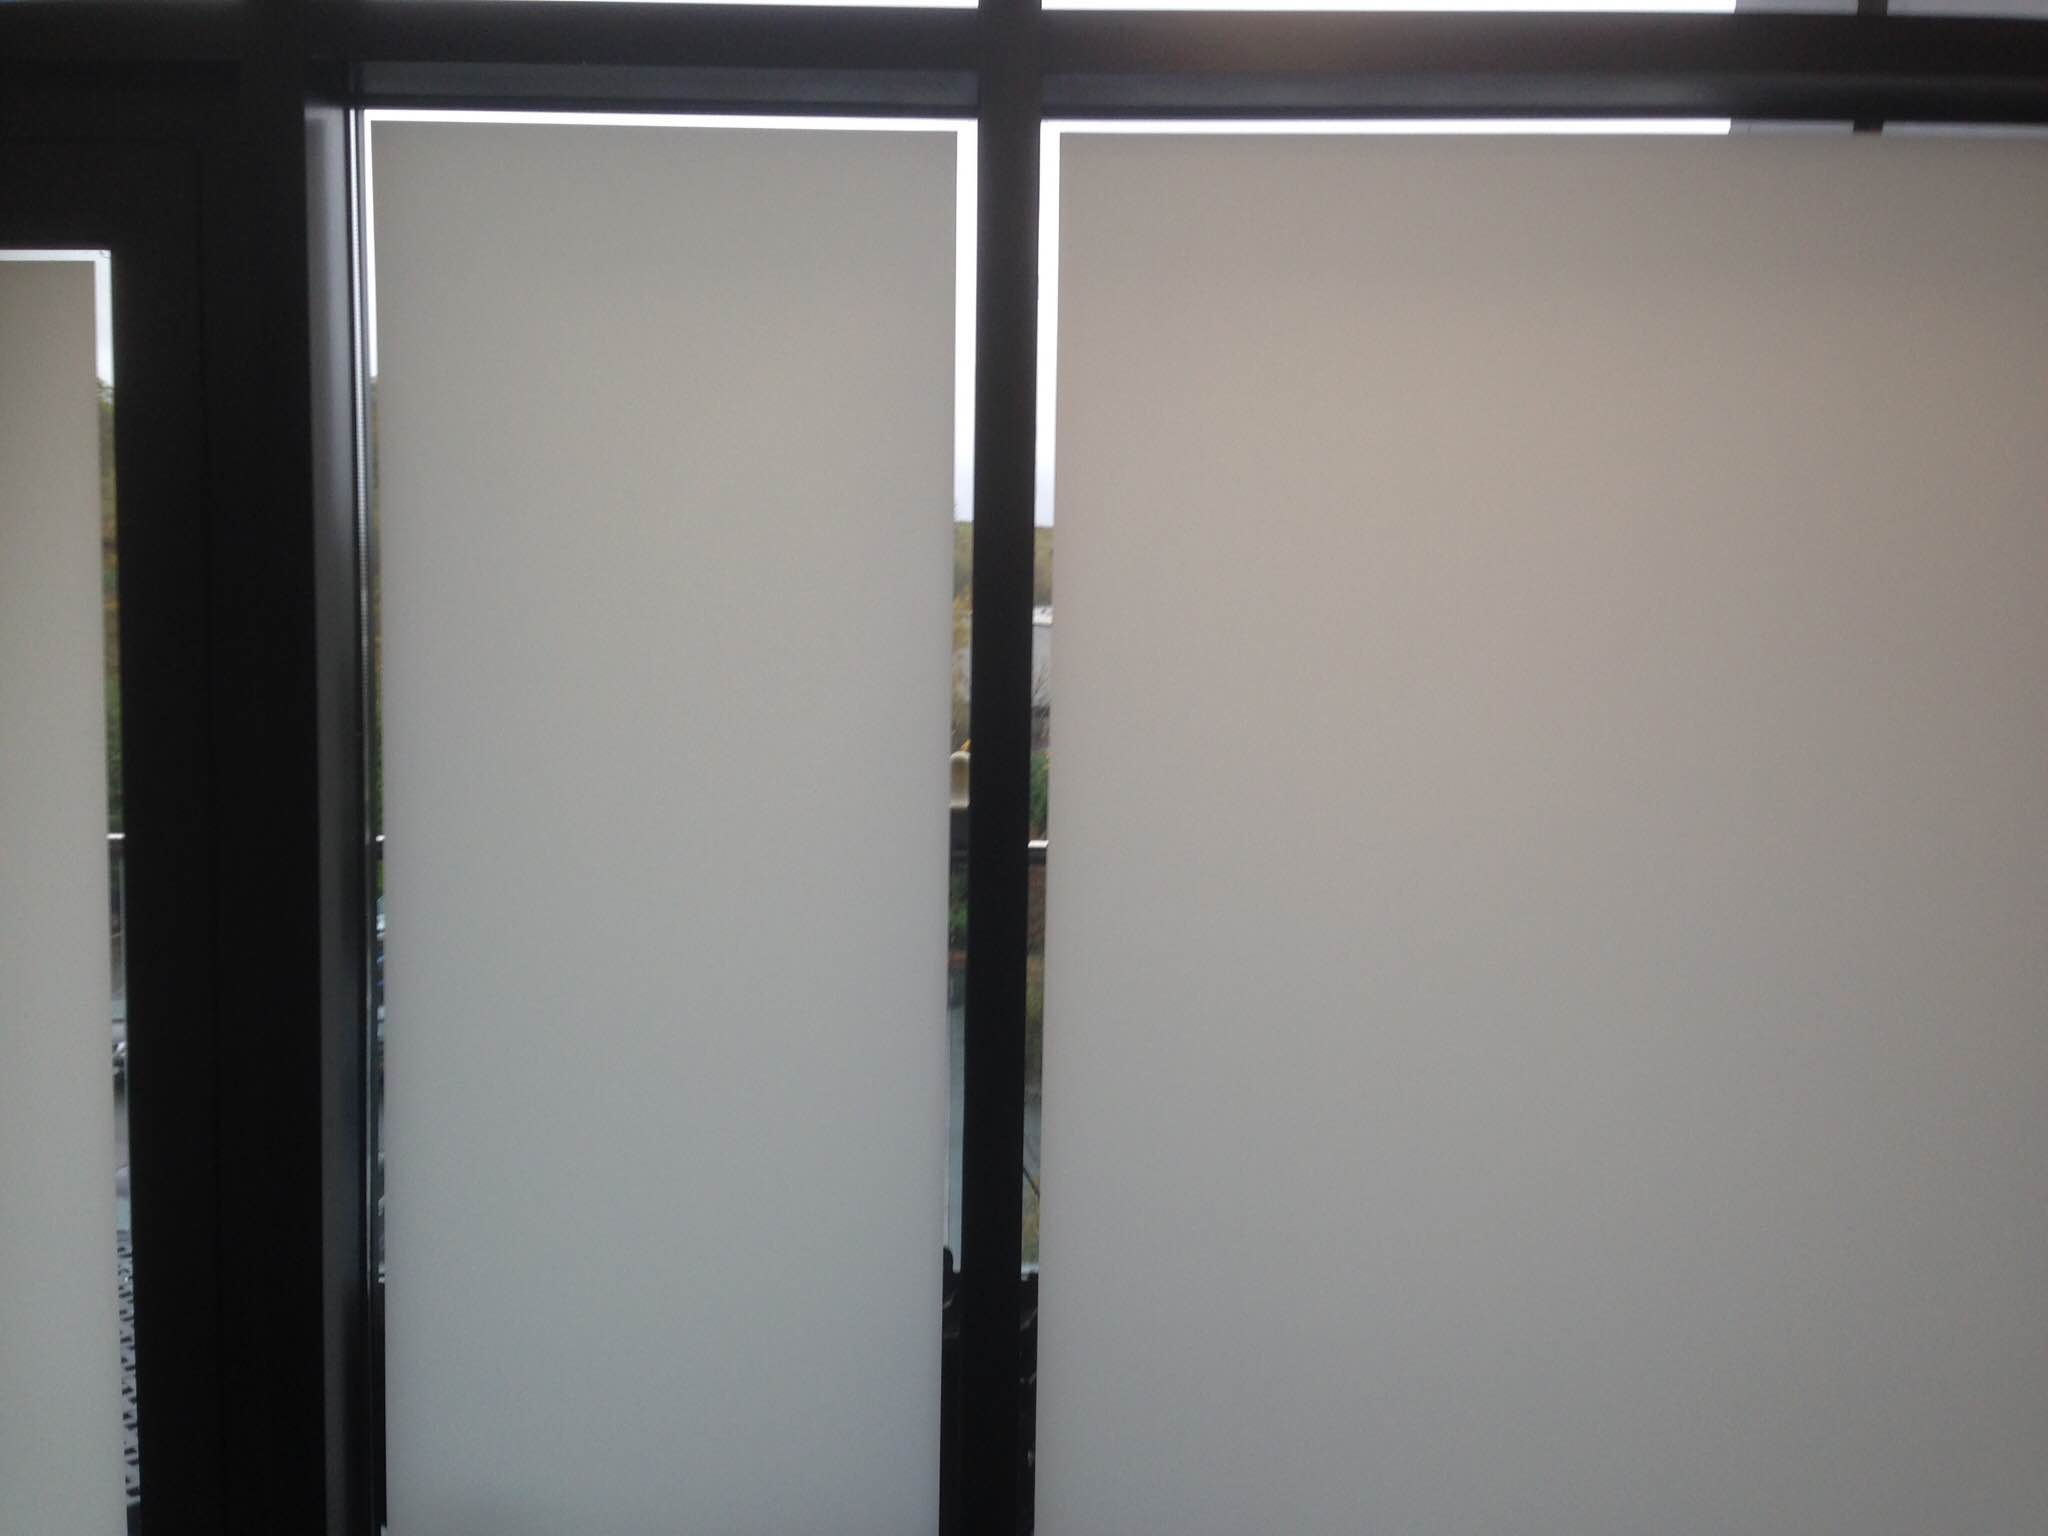 Full frosting with a clear border, for use in areas where 90% privacy is required, the clear border allows people to see out very clearly at the edges of the glass, however the film ` floats` in the middle of the glass and from the out side you can only see very limited areas into the room, this is very popular in rooms where privacy and light is required, but takes away the enclosed feeling of a full frosted window.